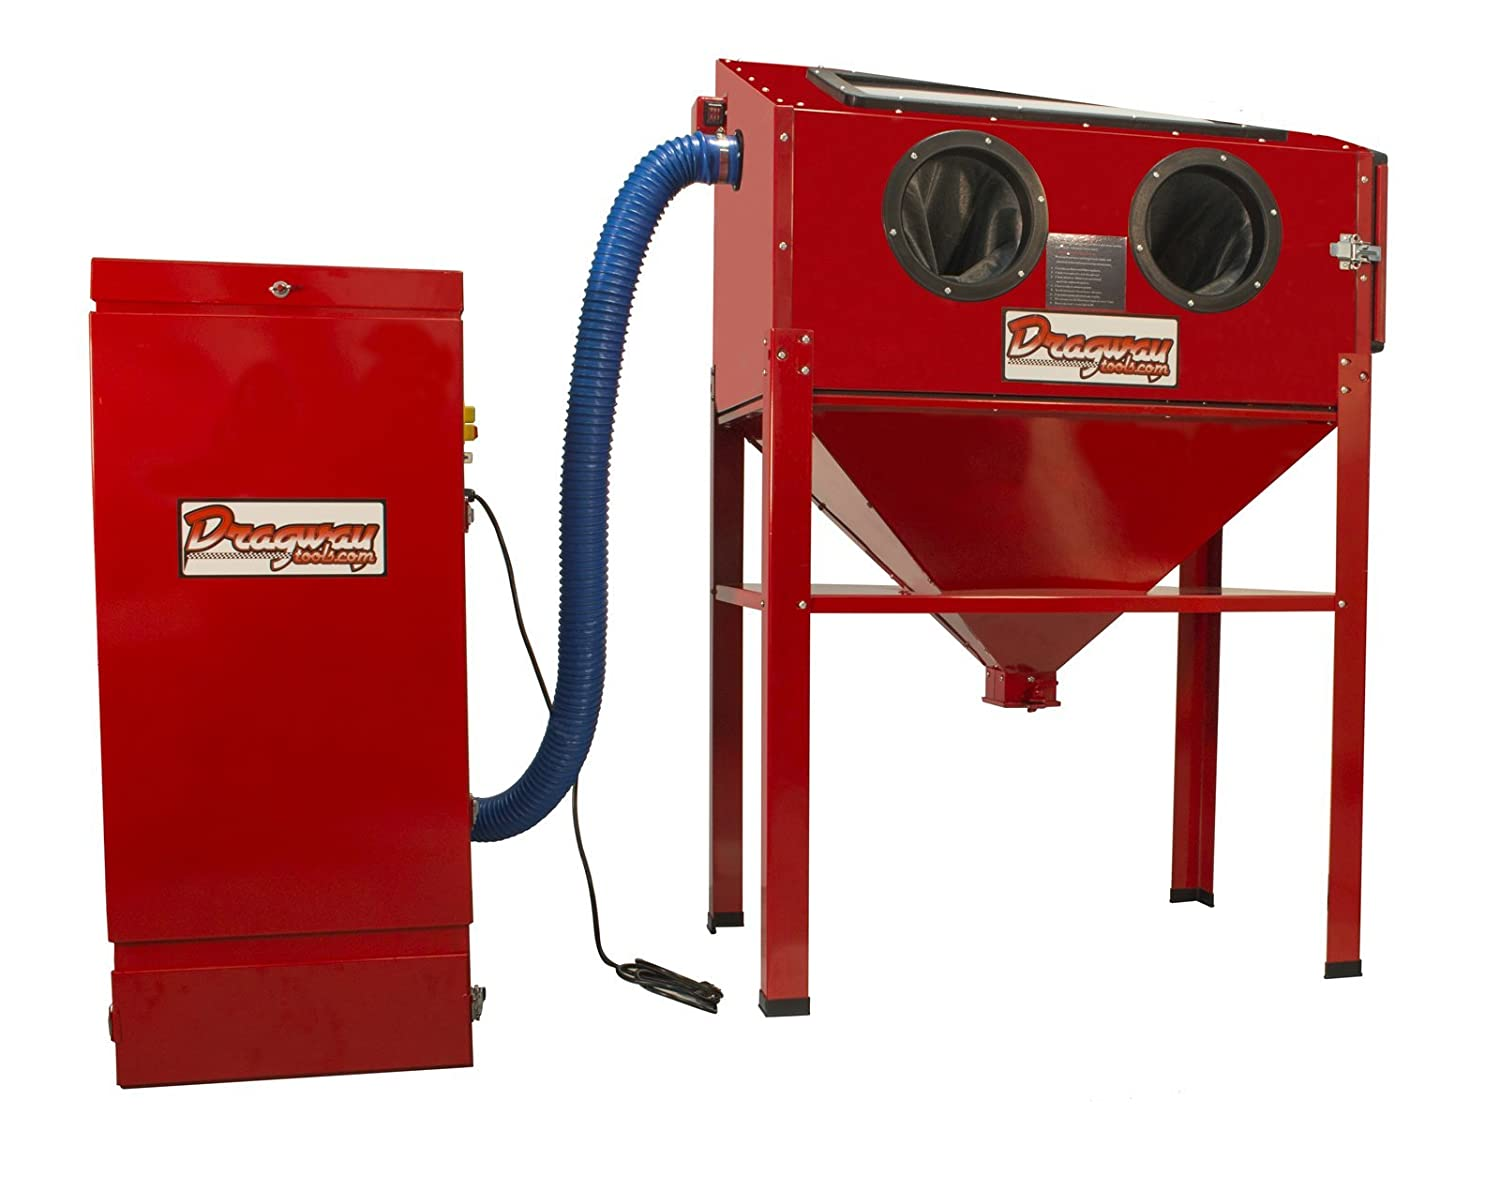 Abrasive Blast Cabinet Dragway Tools Model 60 Sandblast Cabinet With Floor Standing Dust